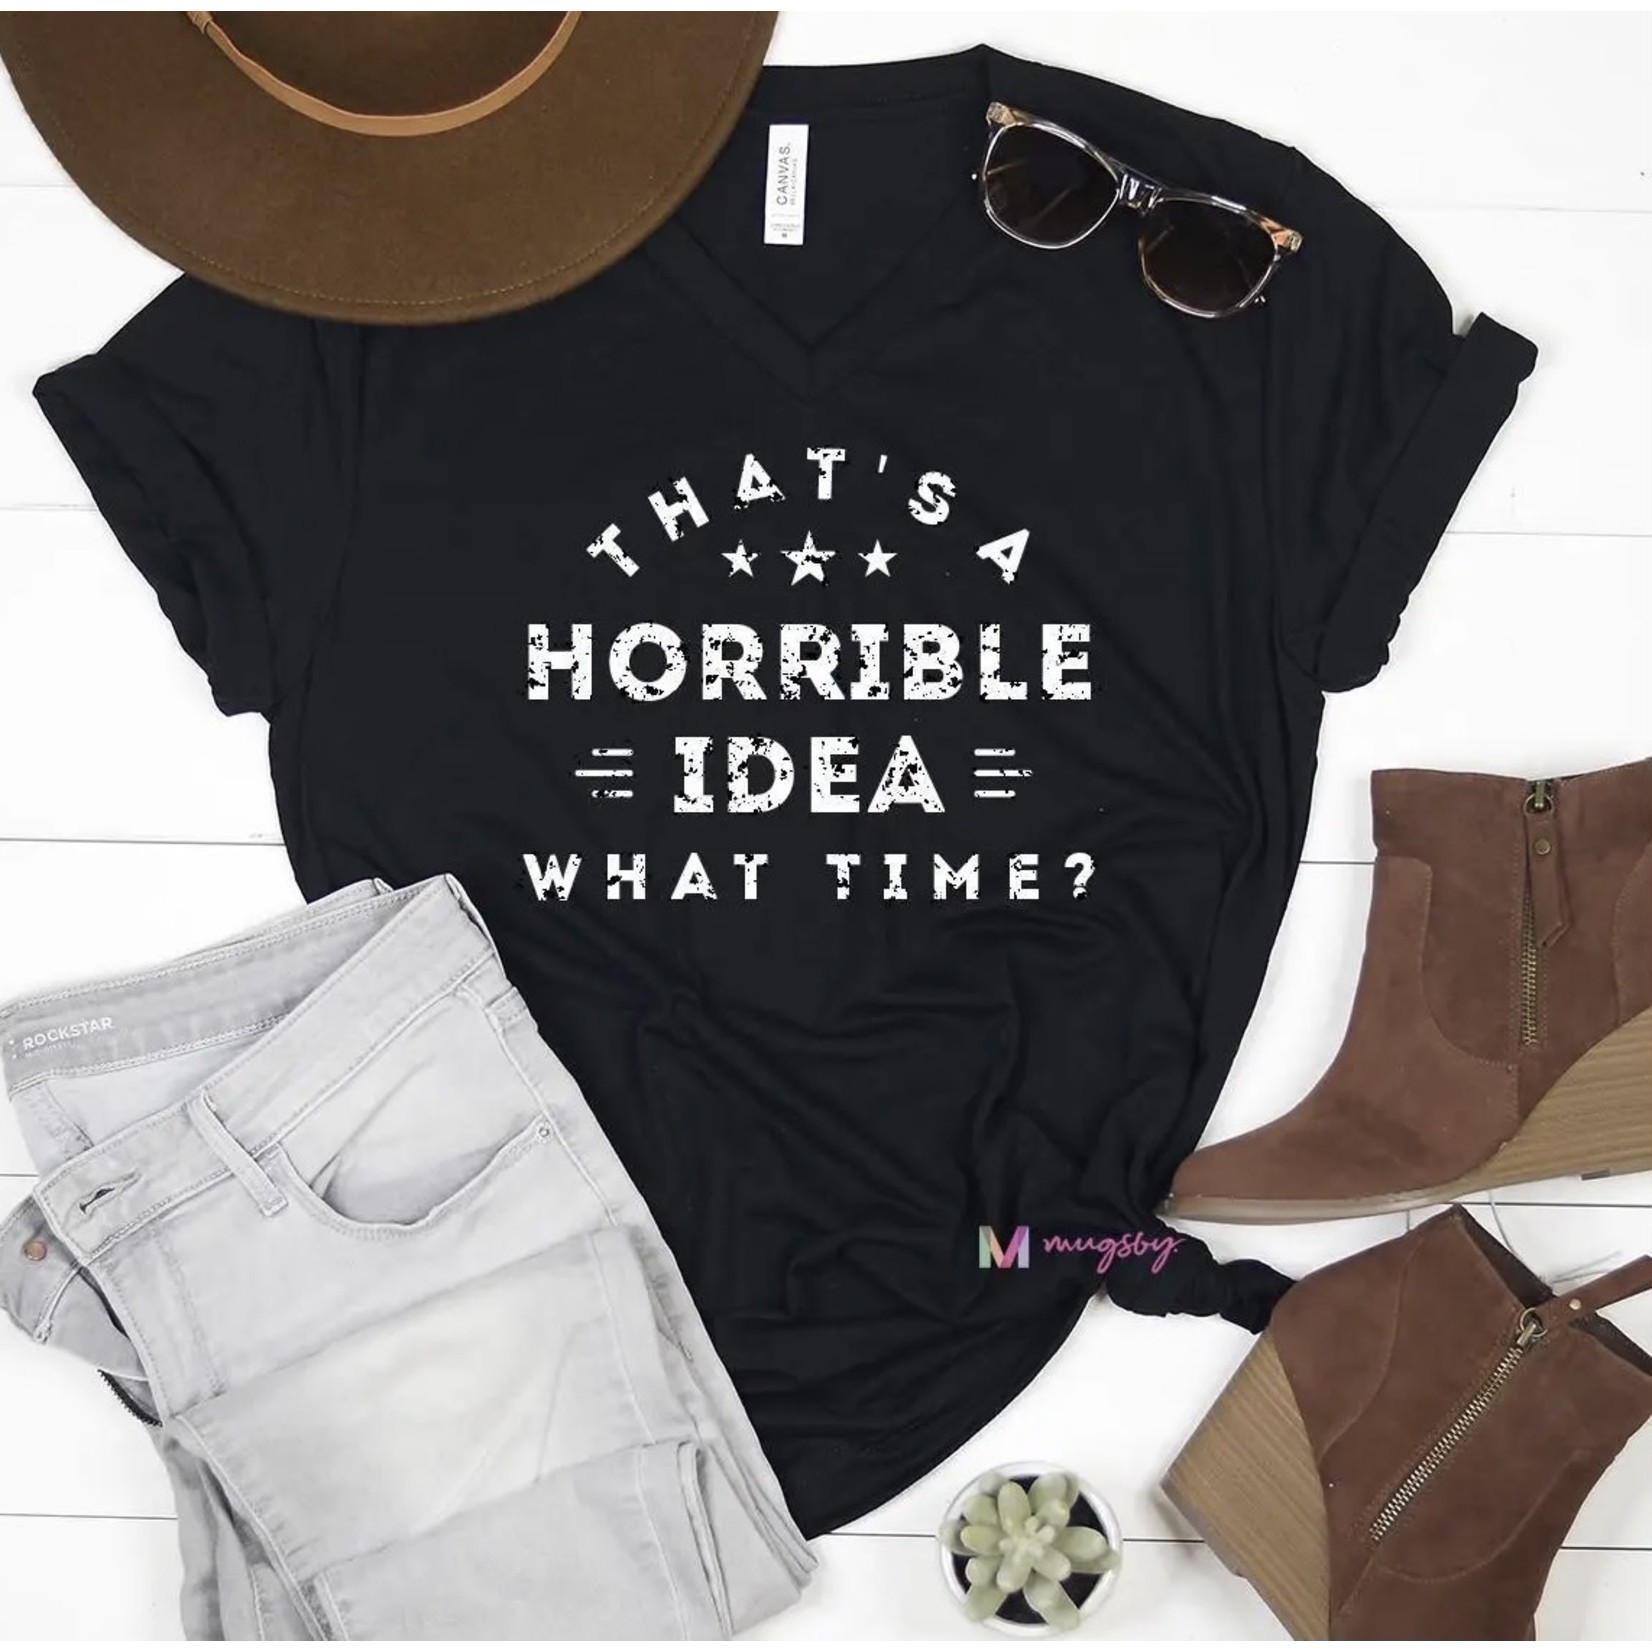 Mugsby Graphic Tee: That's A Horrible Idea!